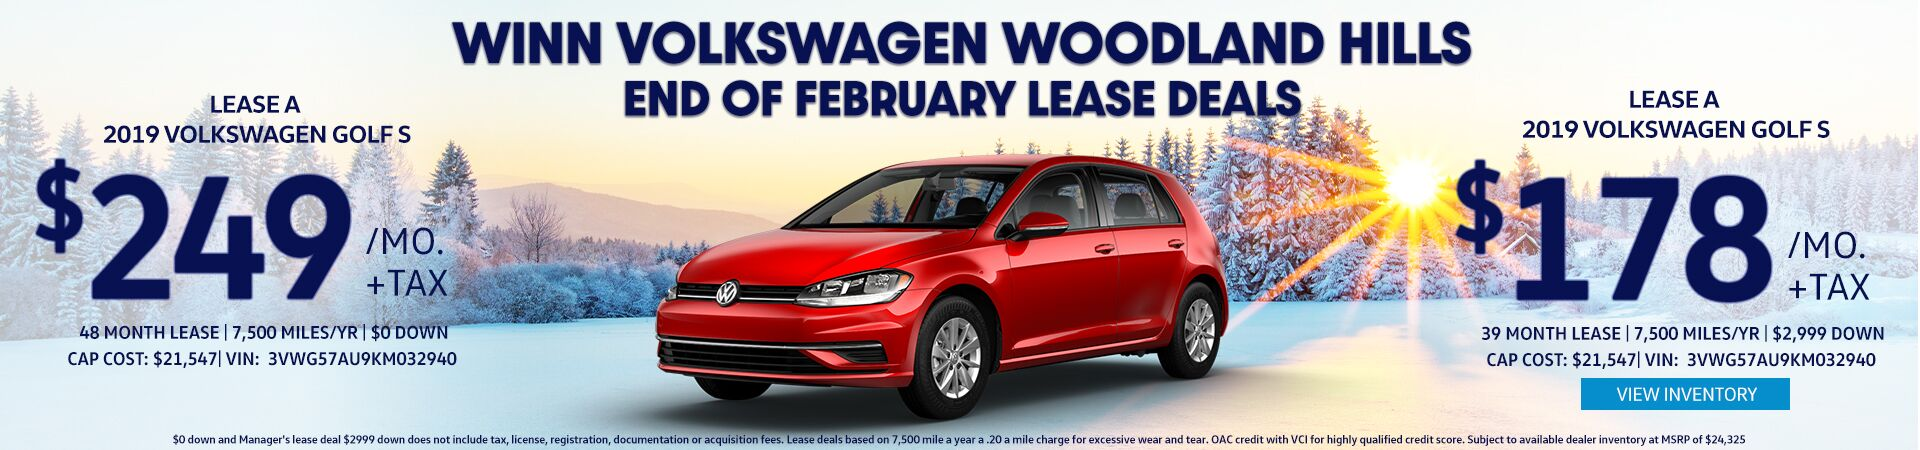 February Golf Lease deals